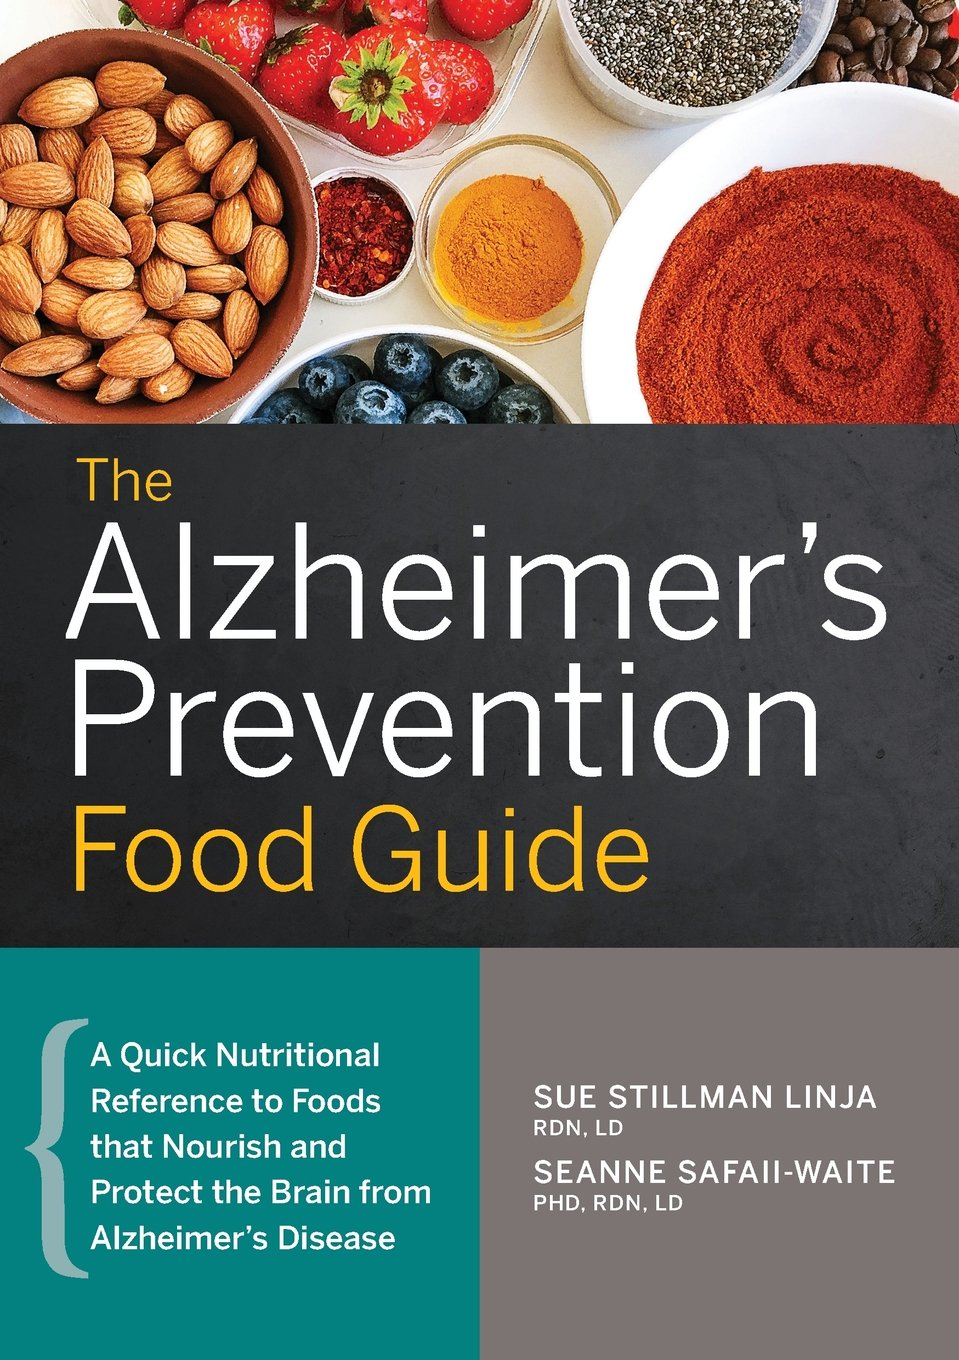 Sunshine and Curry for Alzheimers Prevention